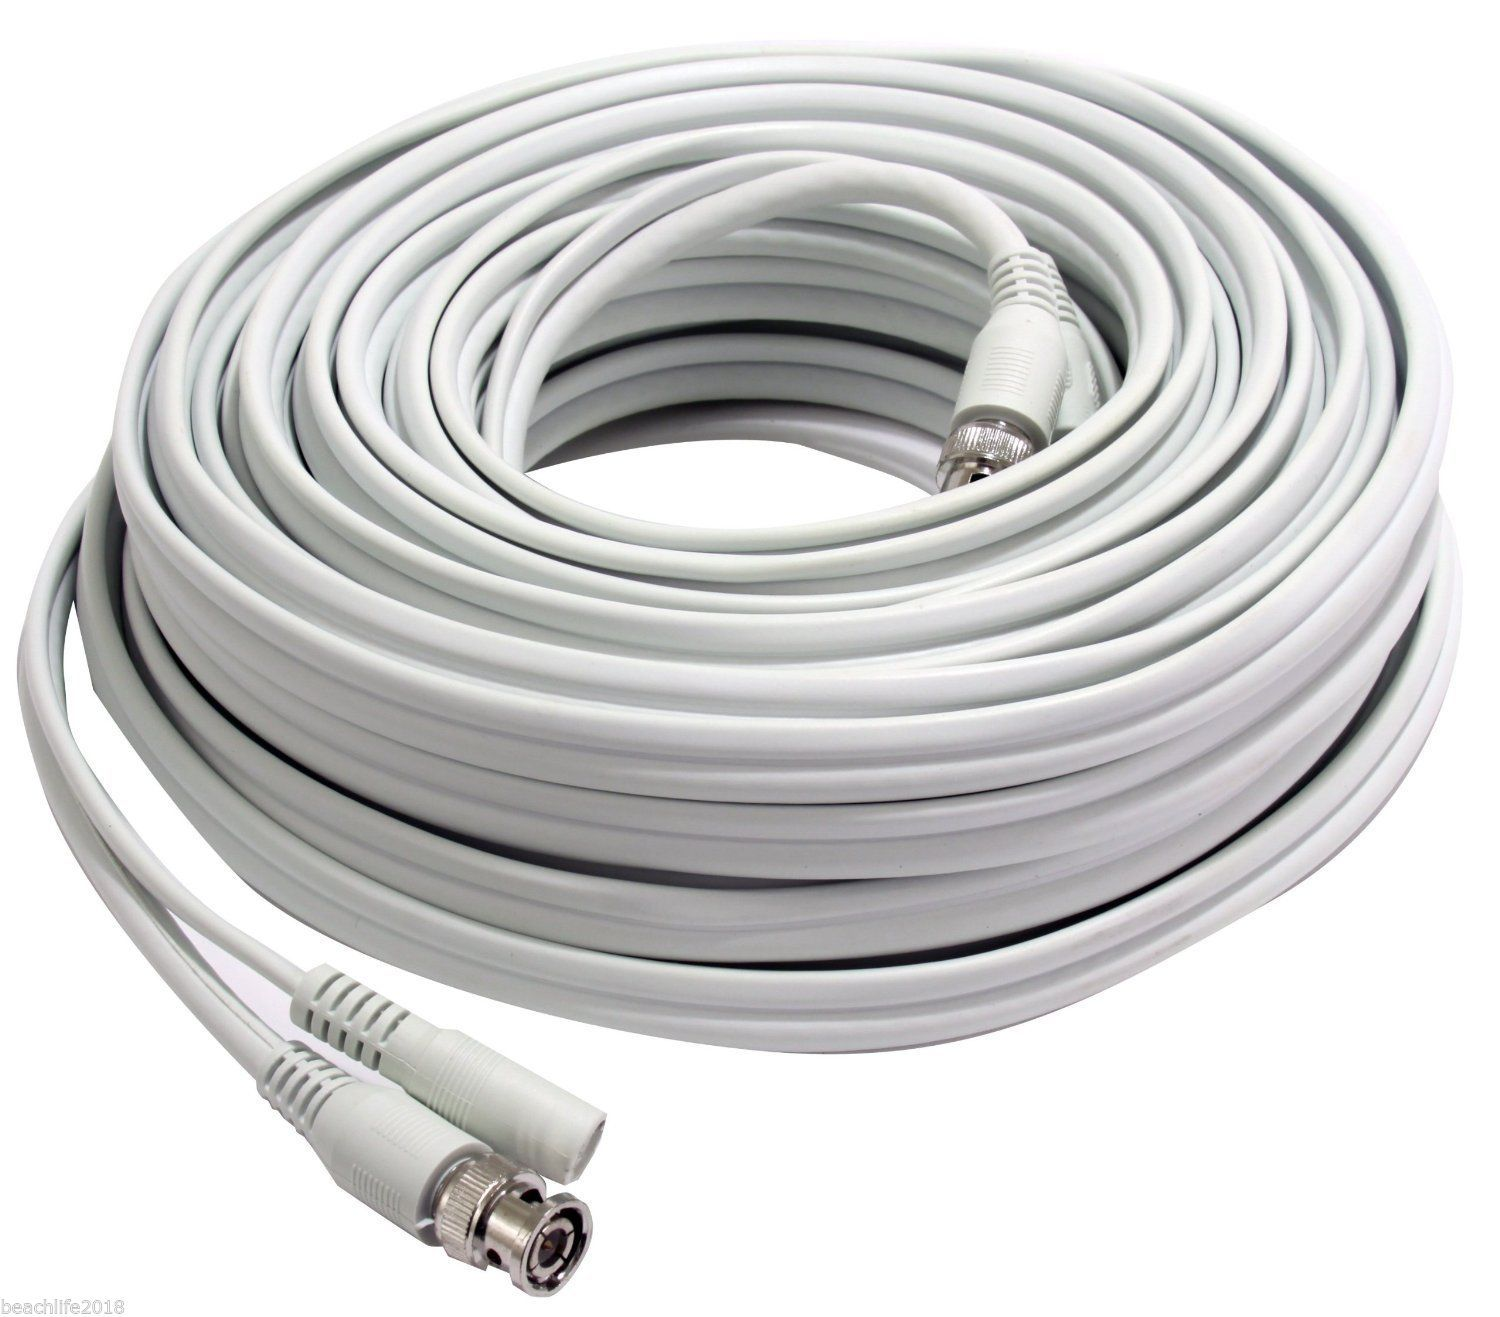 First Alert BNC cable 50-Feet NEW Indoor/Outdoor Use